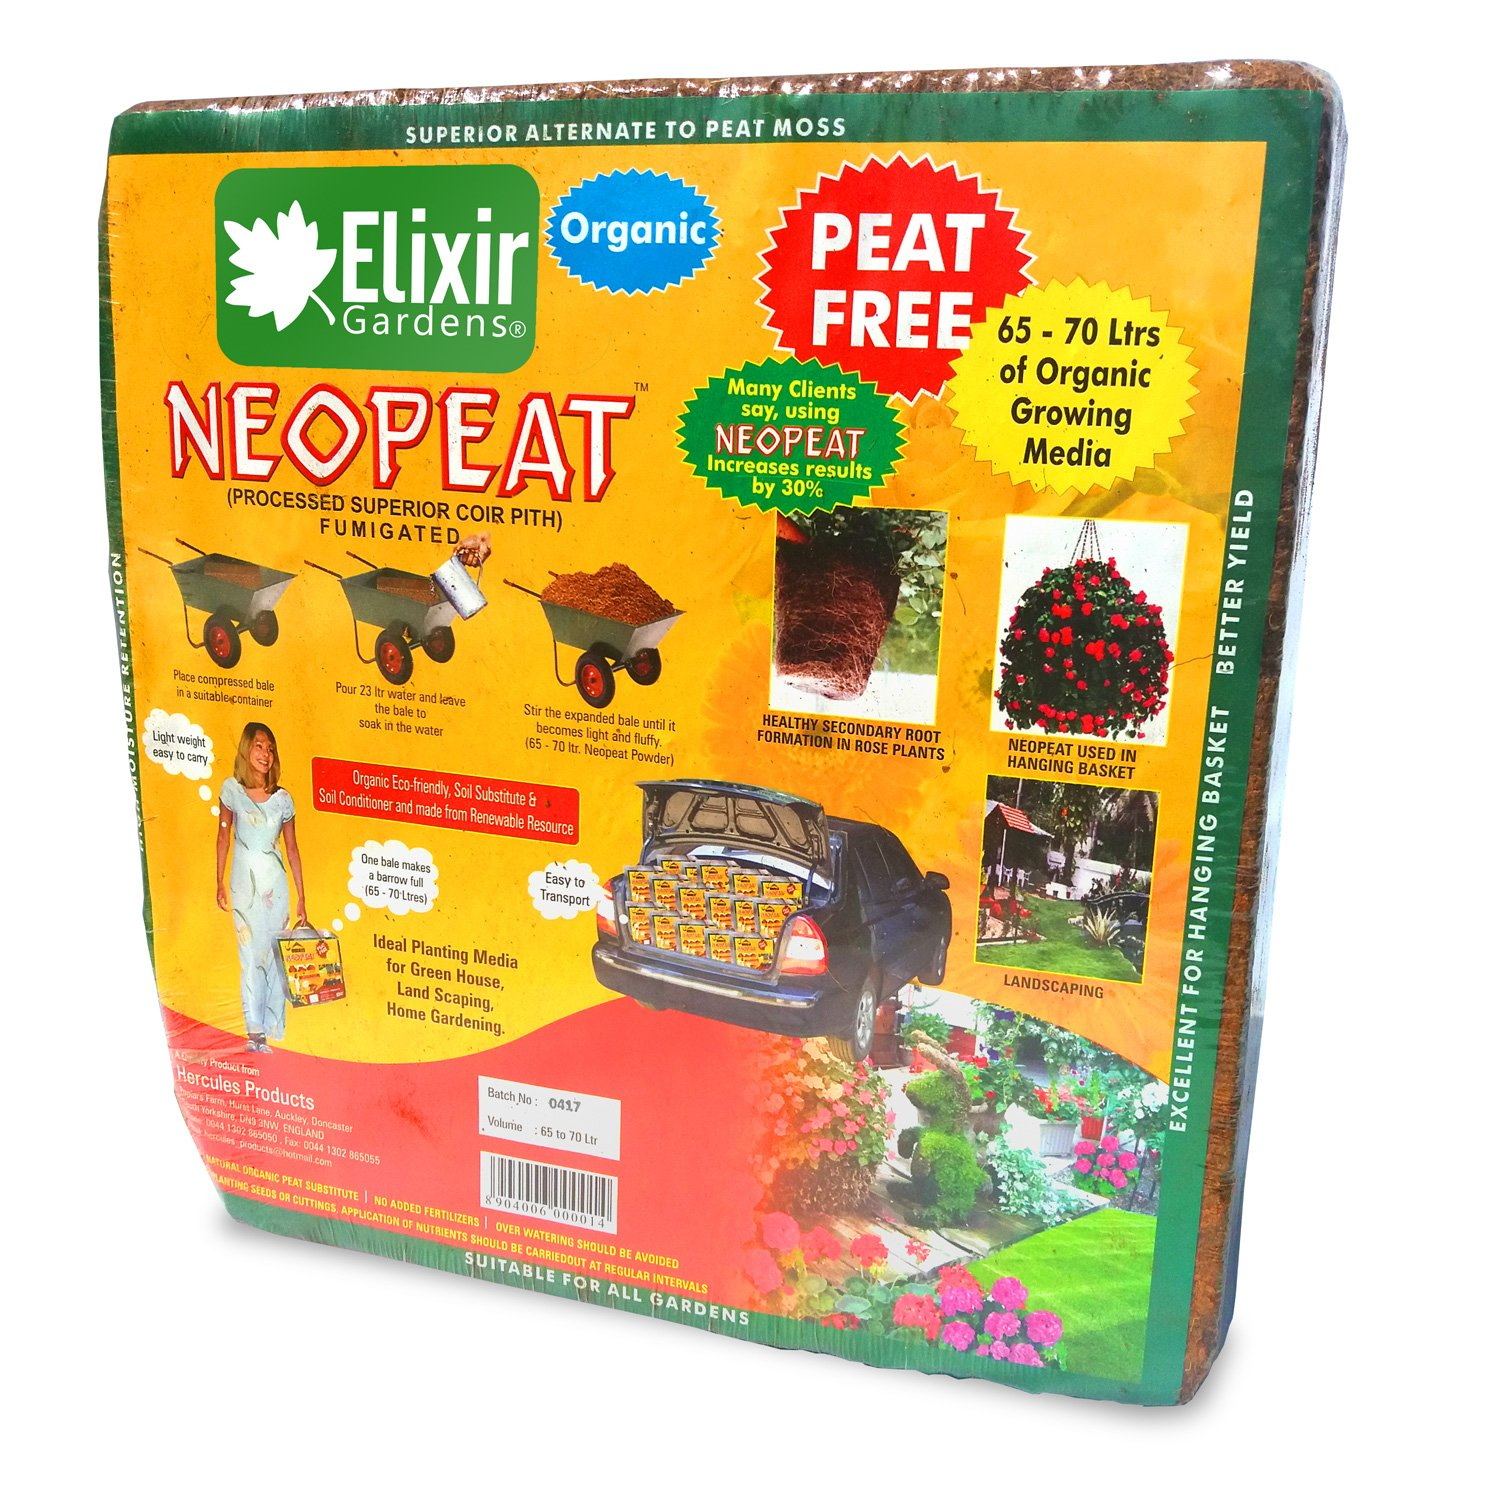 Elixir Gardens (70lt Coir Compost Organic Blocks Makes x 3)